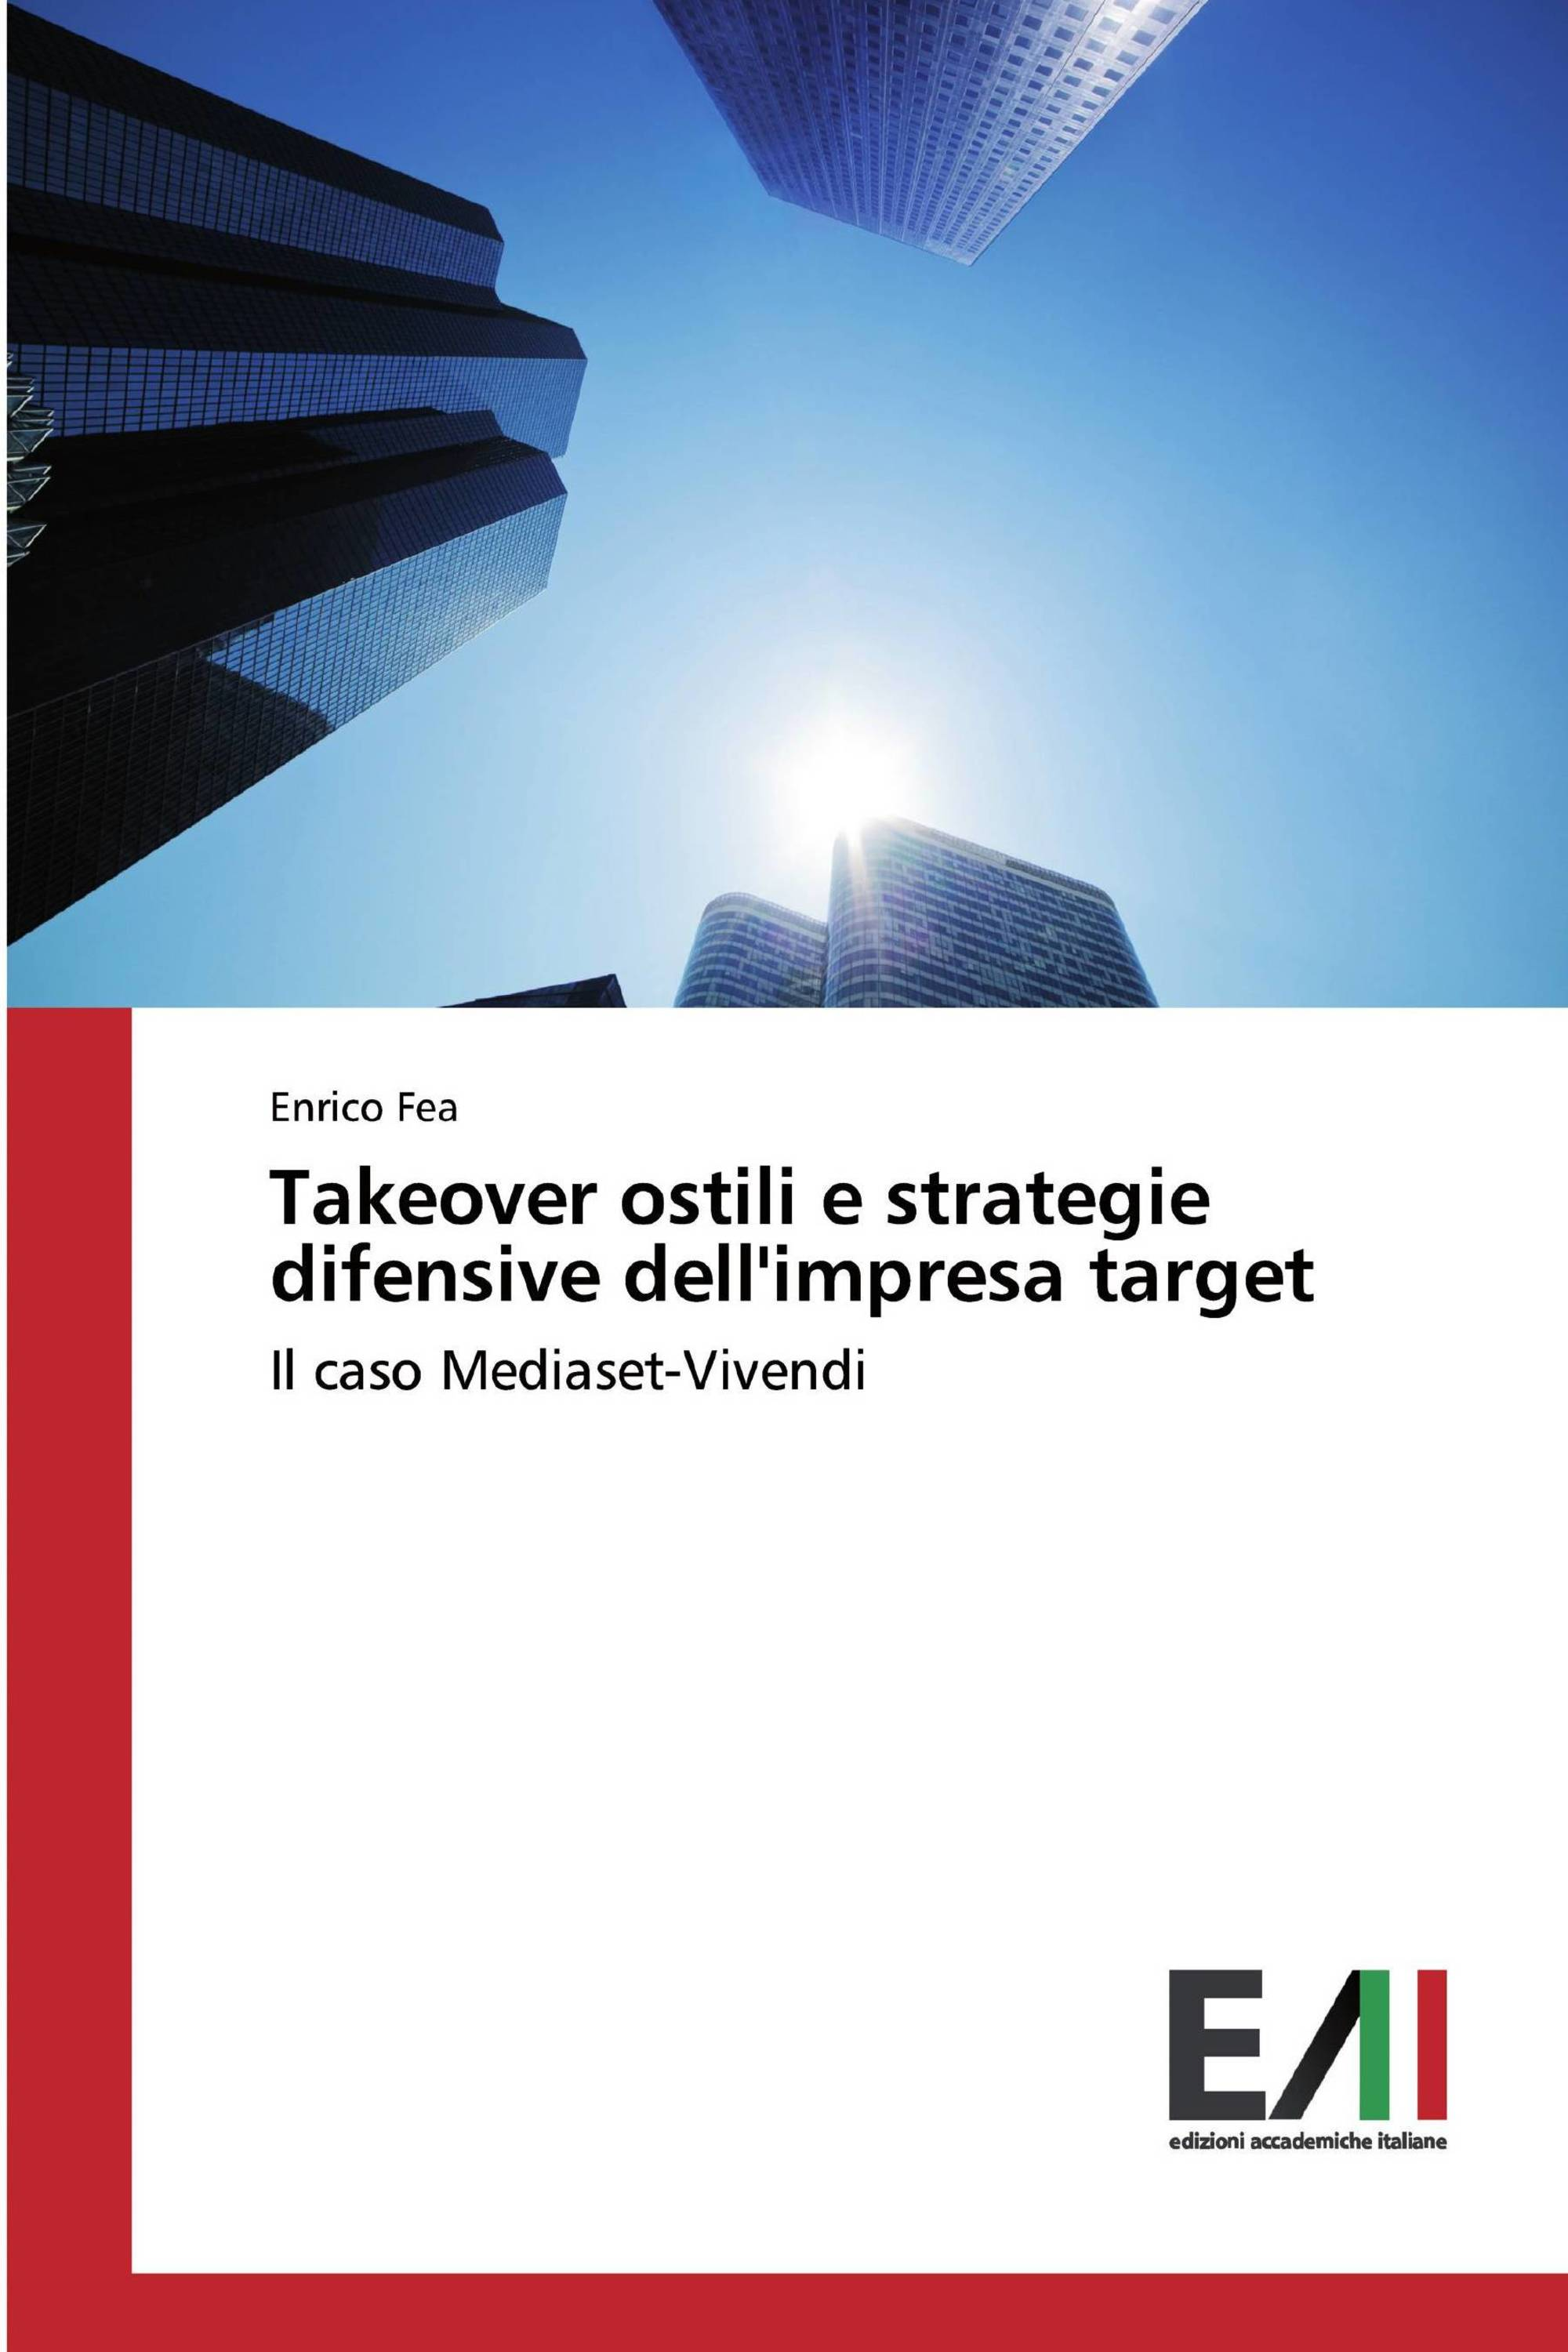 Takeover ostili e strategie difensive dell'impresa target